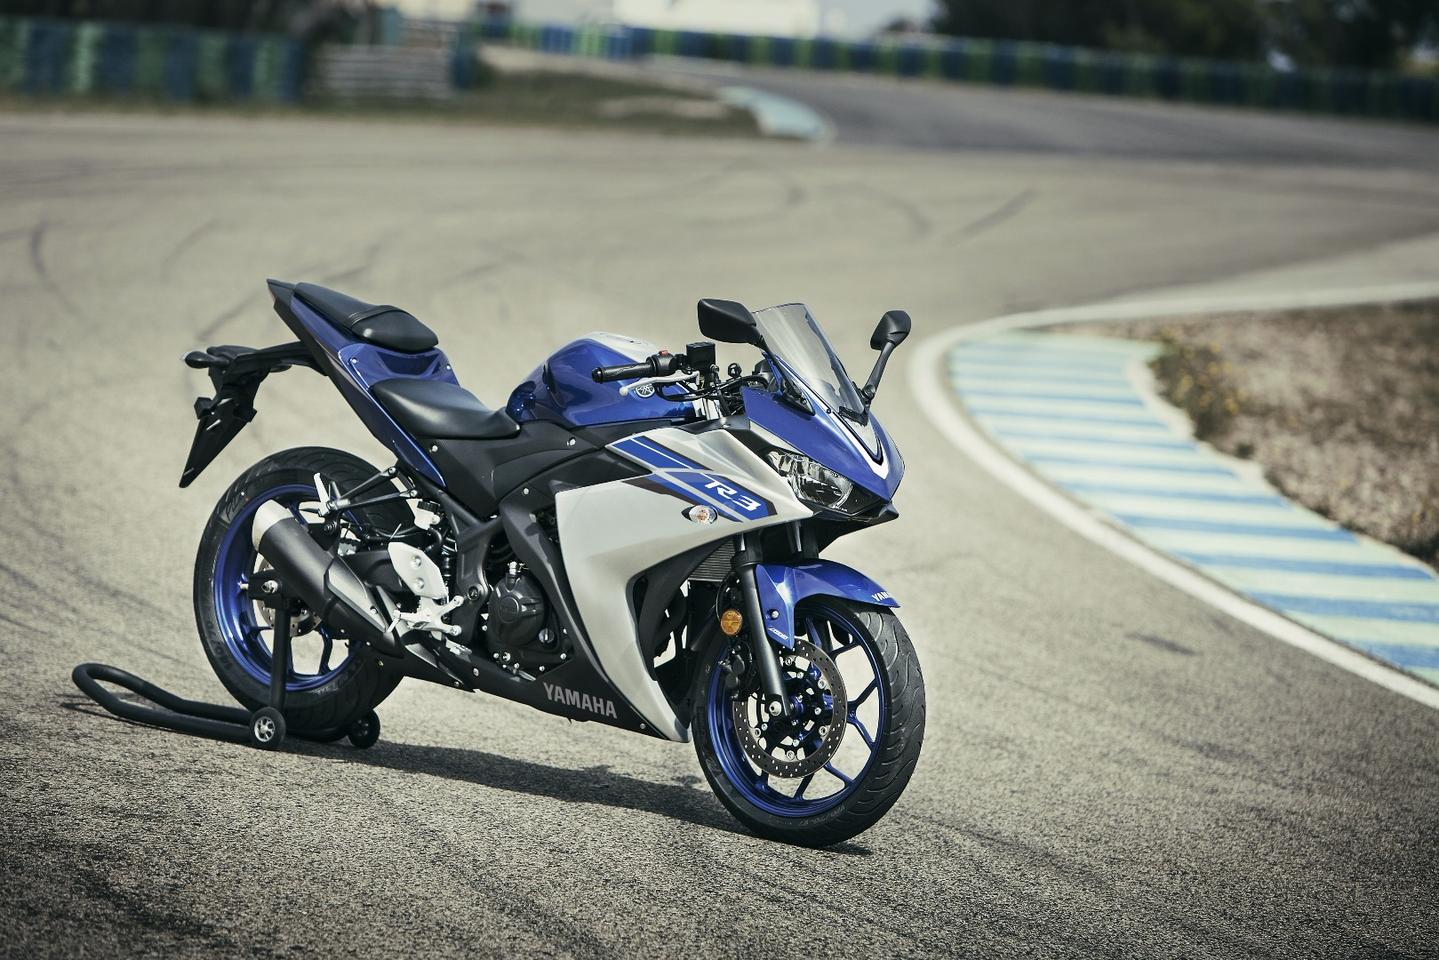 World Superbikes invest in new entry-level 300 cc class